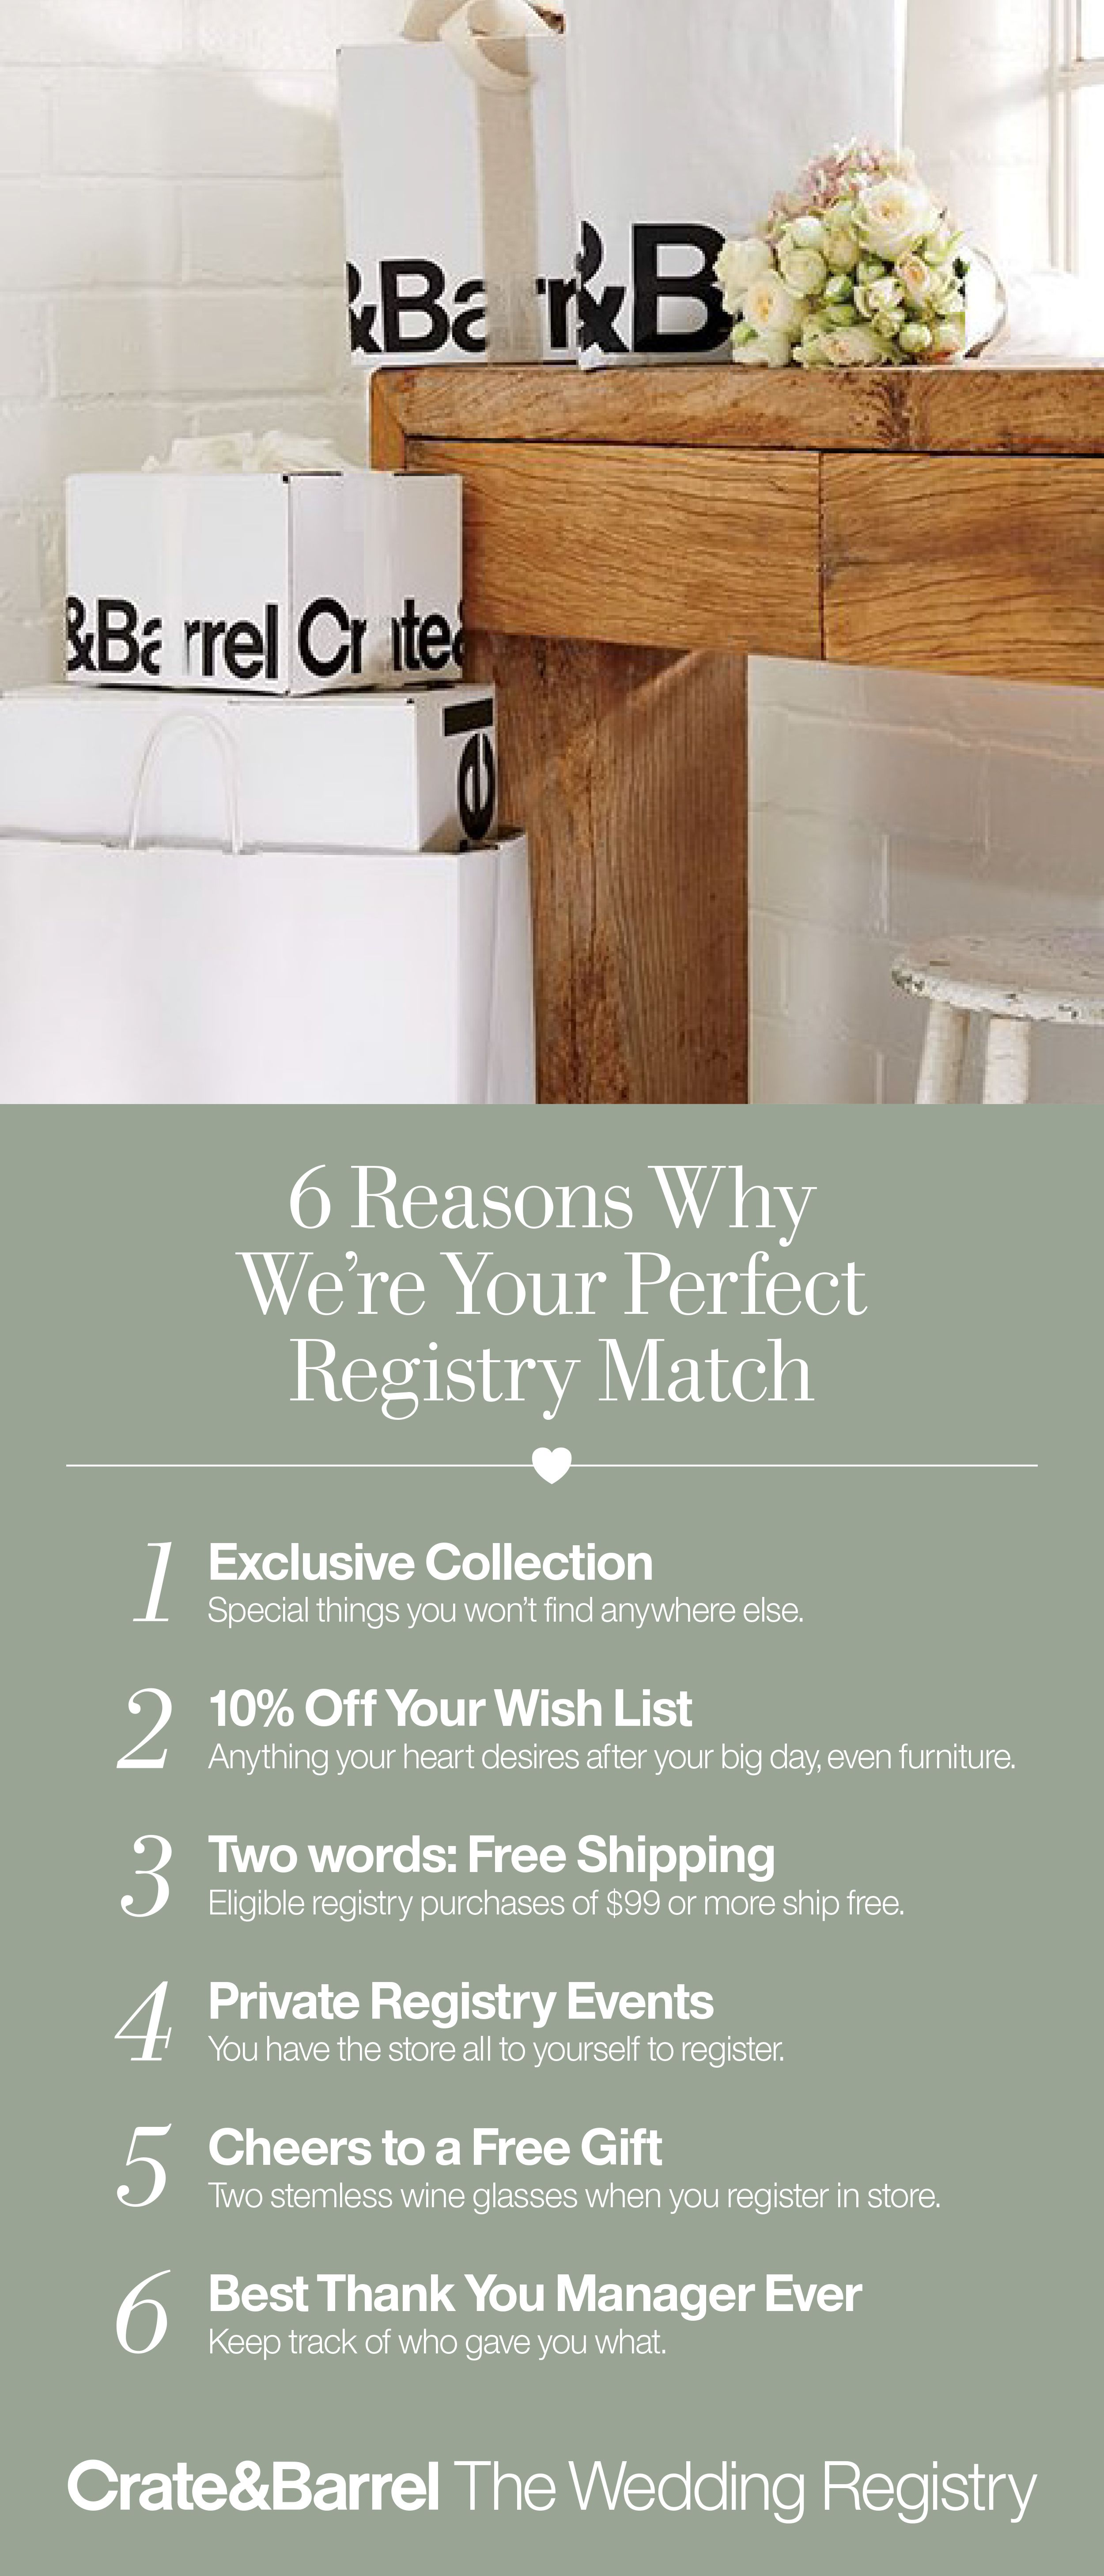 Wedding Registry And Gifts Wedding Sweepstakes Bridal Bands Crate And Barrel Registry